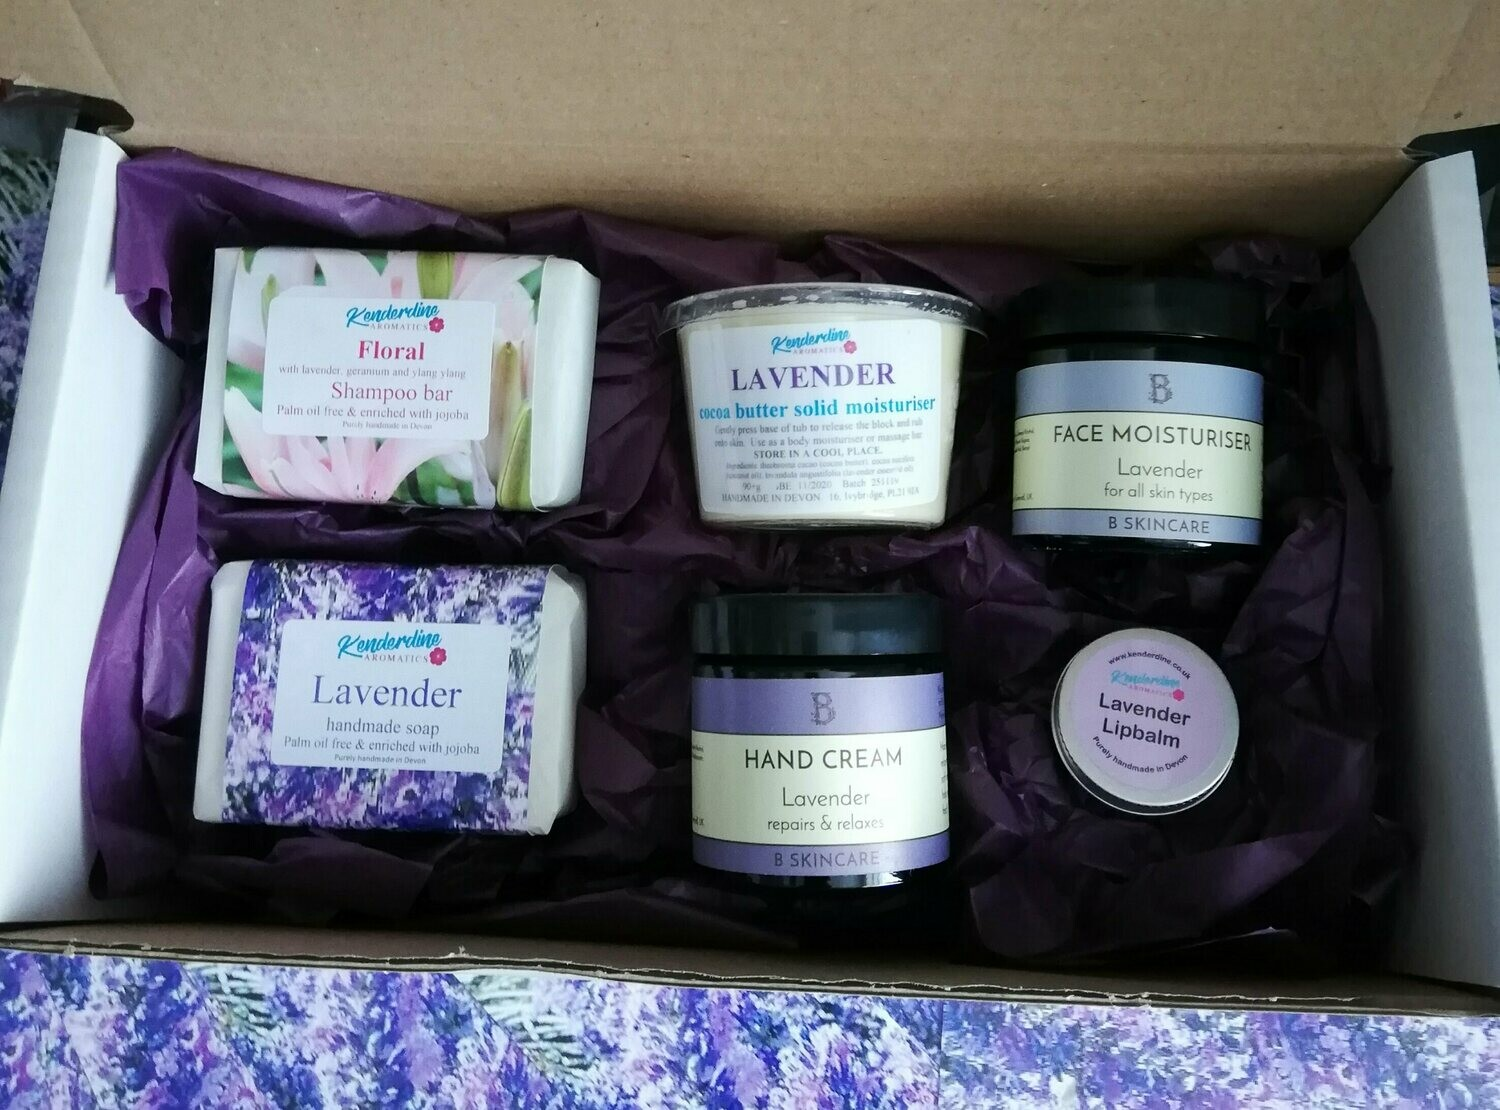 Treat box of lavender